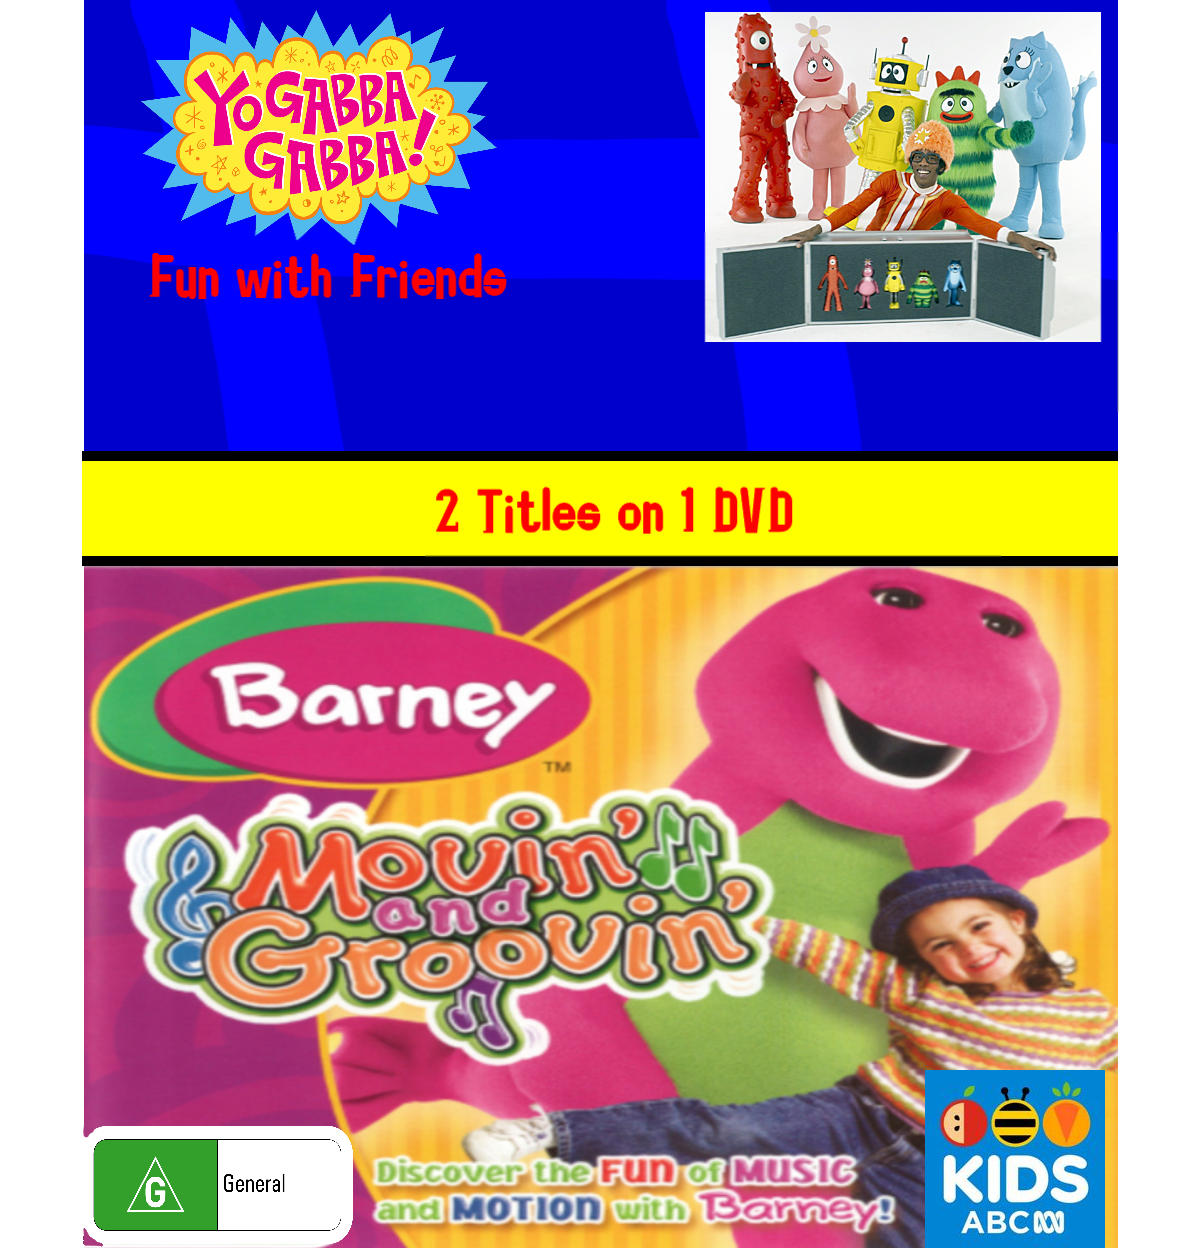 Yo Gabba Gabba and Barney - Fun with Friends and Movin' and Groovin'